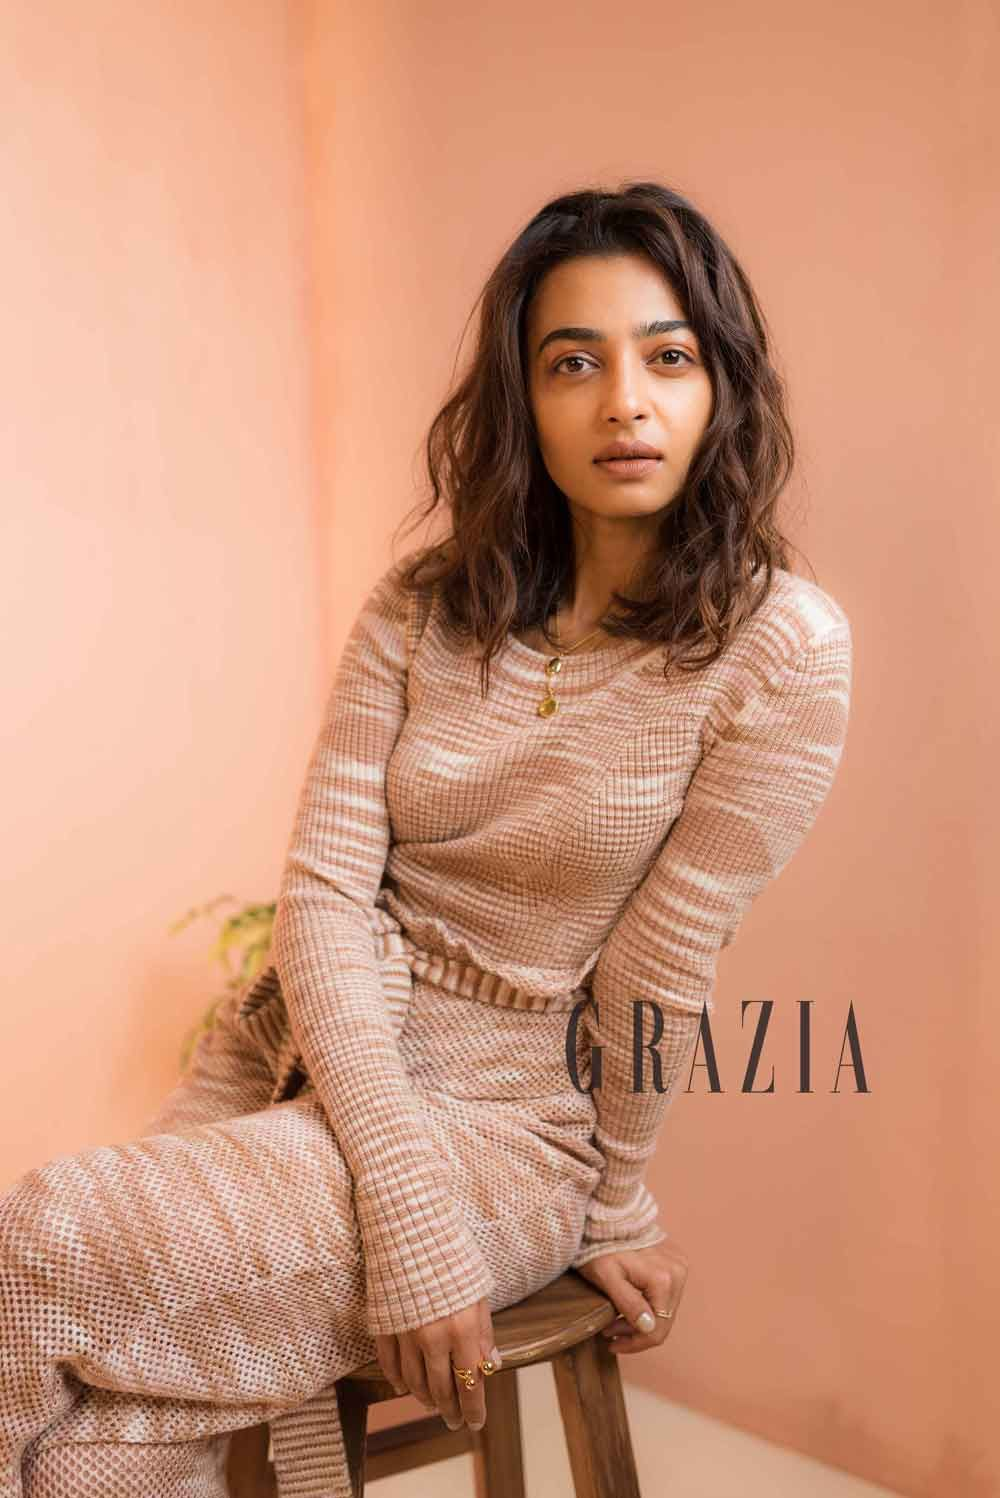 Radhika Apte Is As Real As They Come